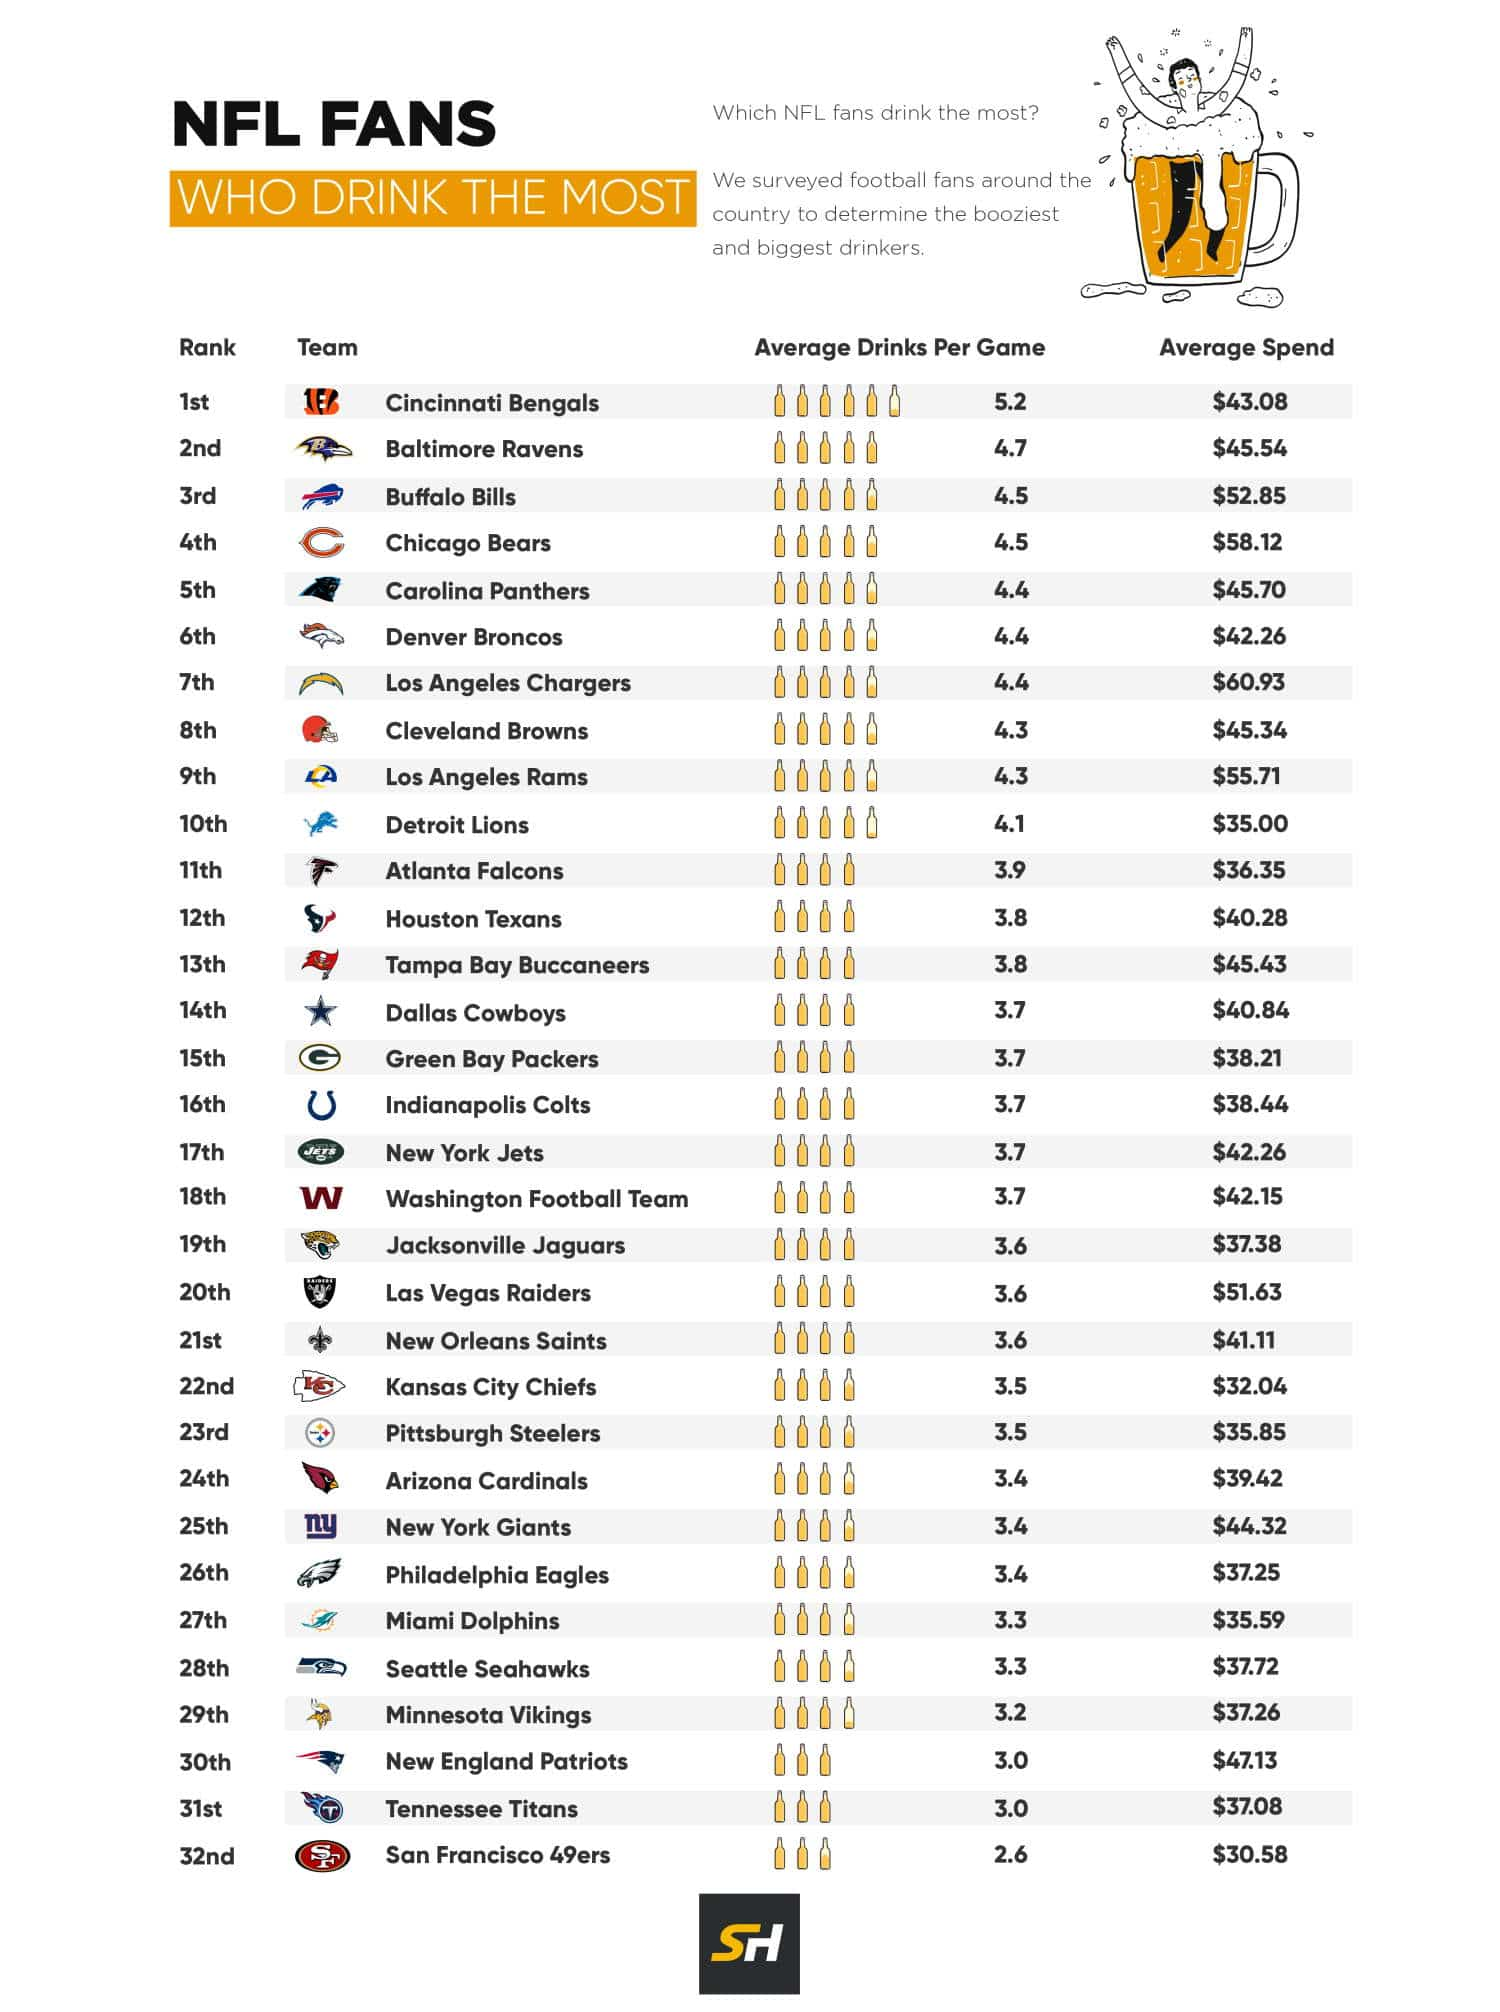 NFL fans who drink the most